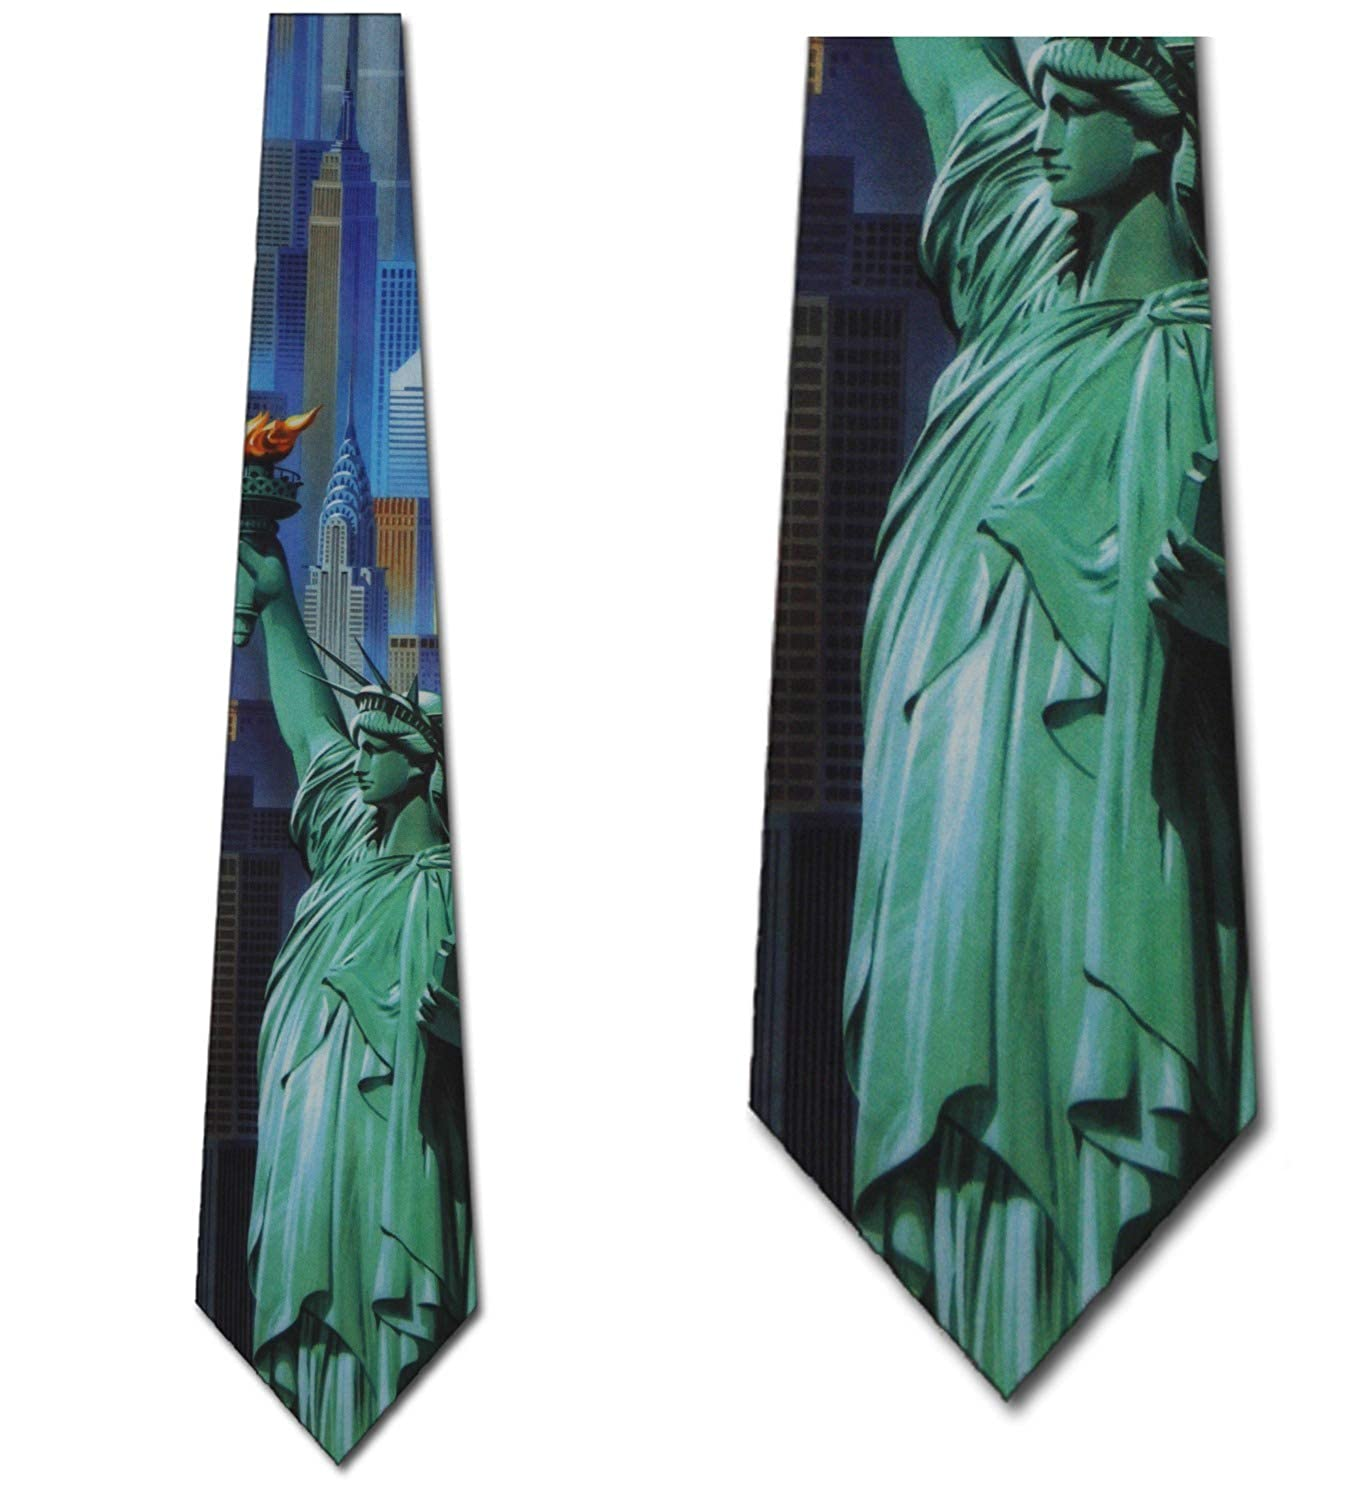 c2a93e63bc33 Amazon.com: New York Ties Statue of Liberty Neckties Monument Tie Mens  Necktie: Clothing